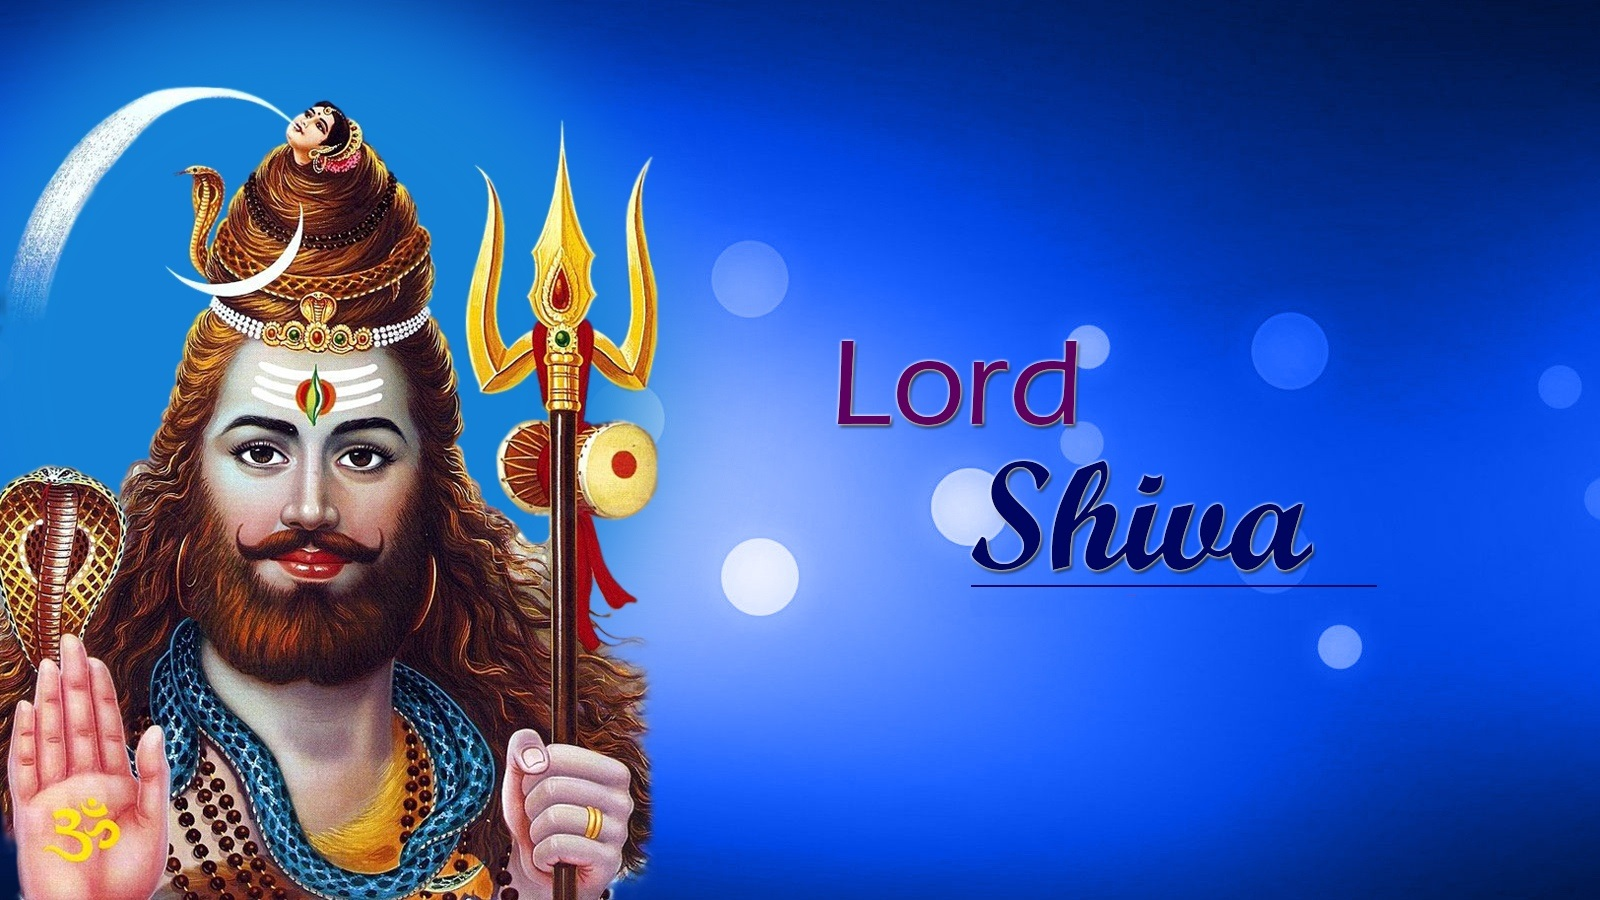 lord shiva hd images for mobile 3